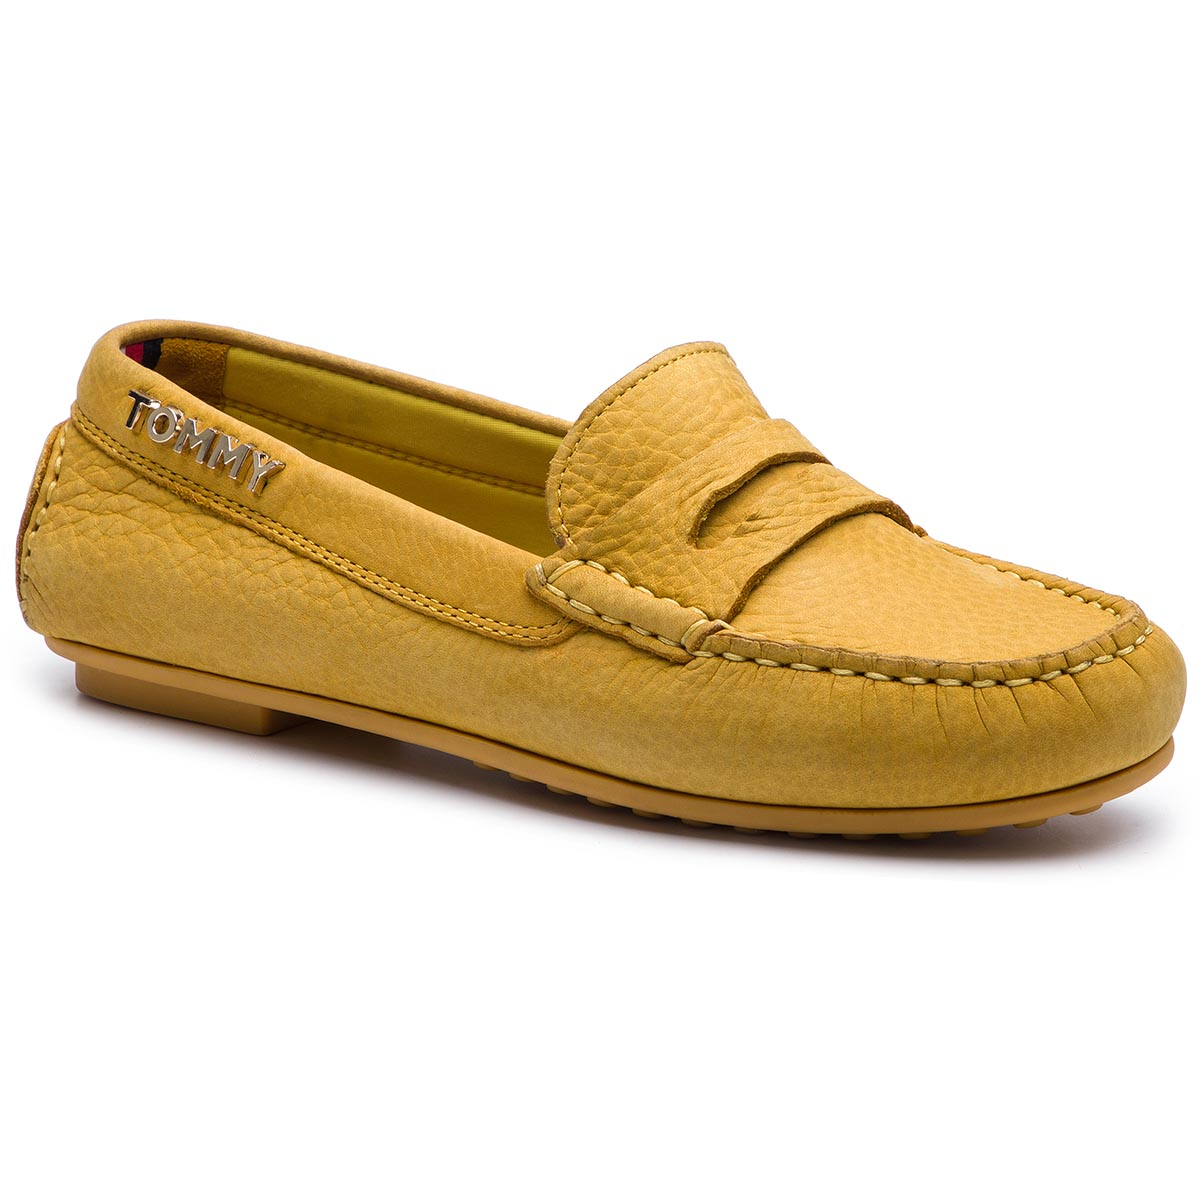 Mocasini TOMMY HILFIGER - Colorful Tommy Moccasin FW0FW04398 Spectra Yellow 730